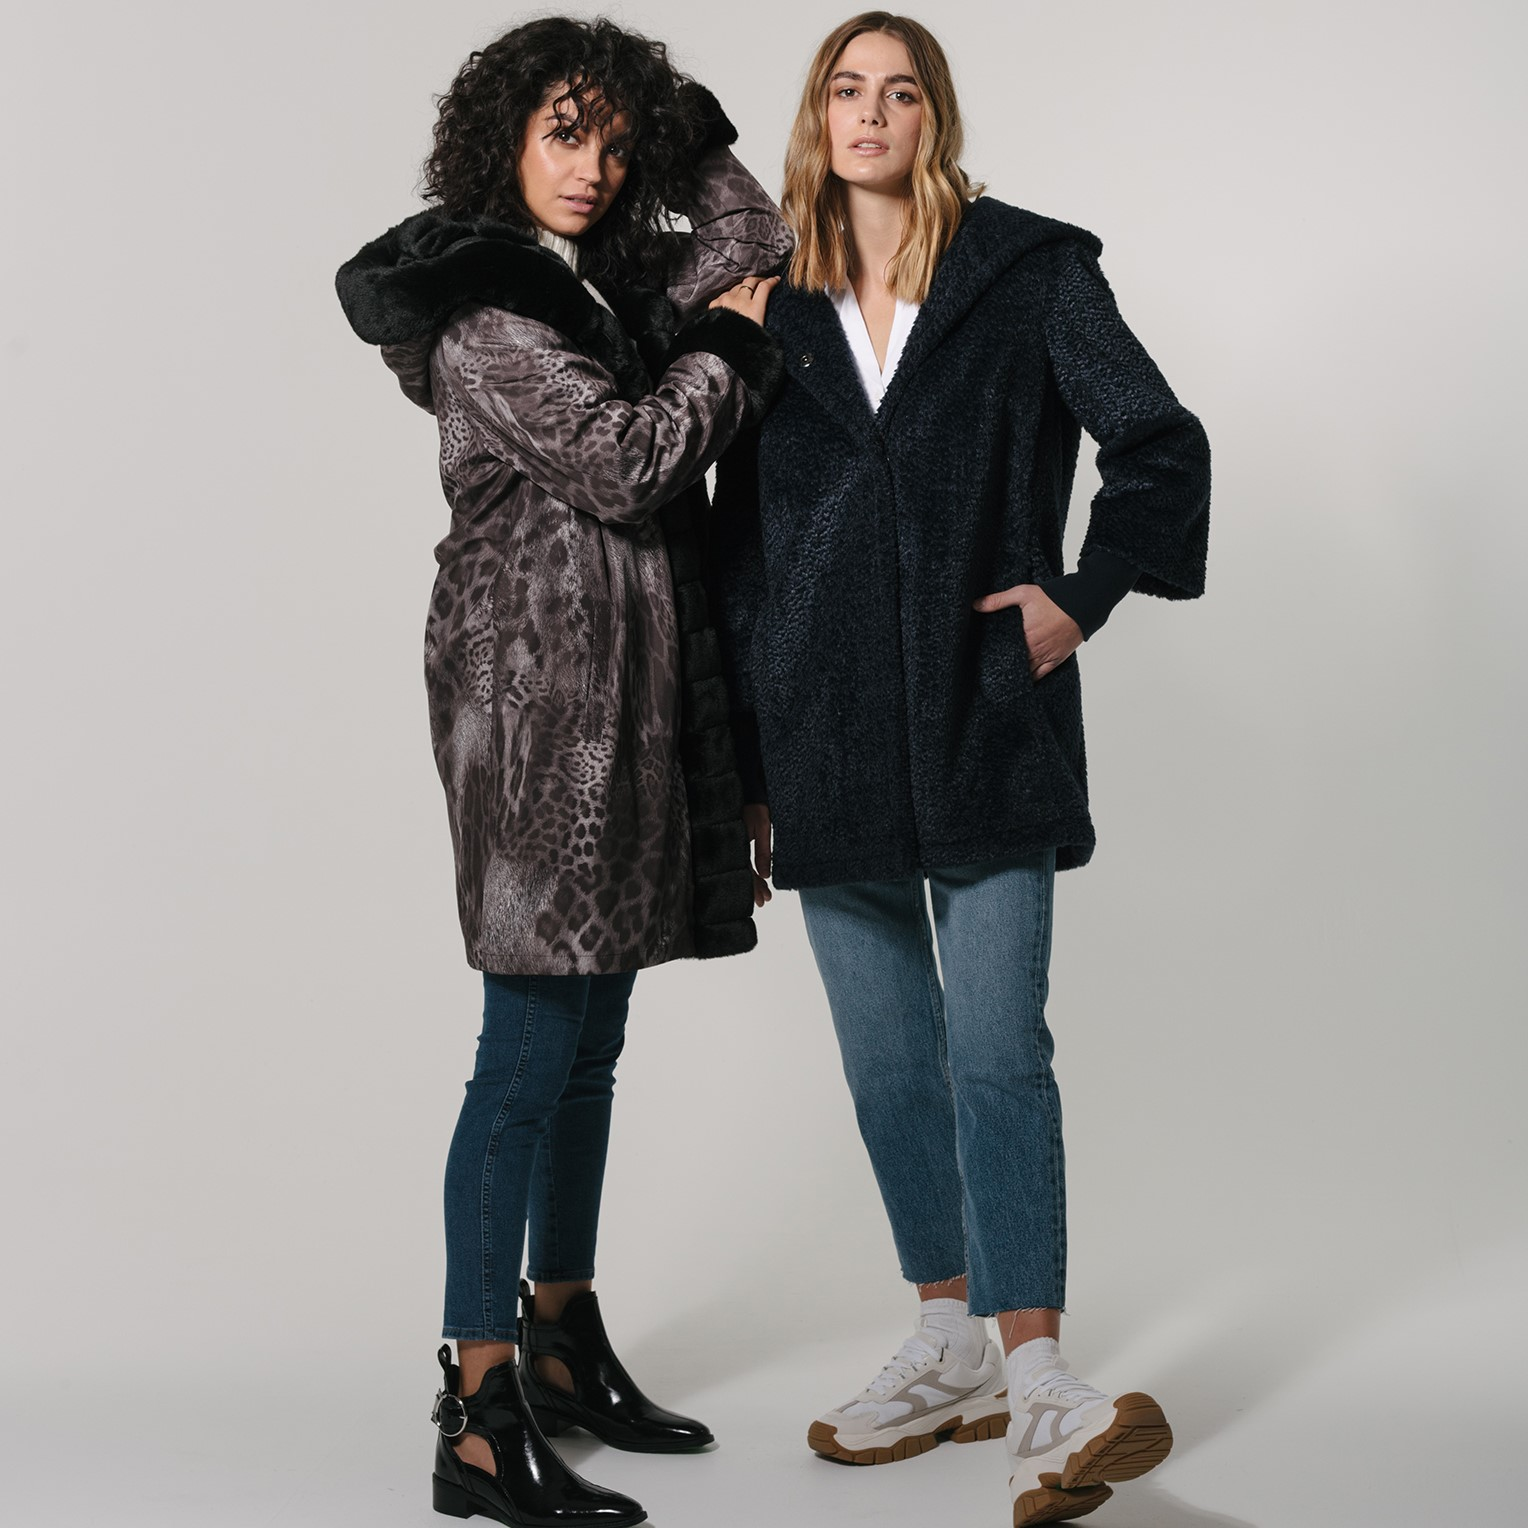 Unique selection of trendy women's apparel and accessories featuring American, European and Canadian designers.